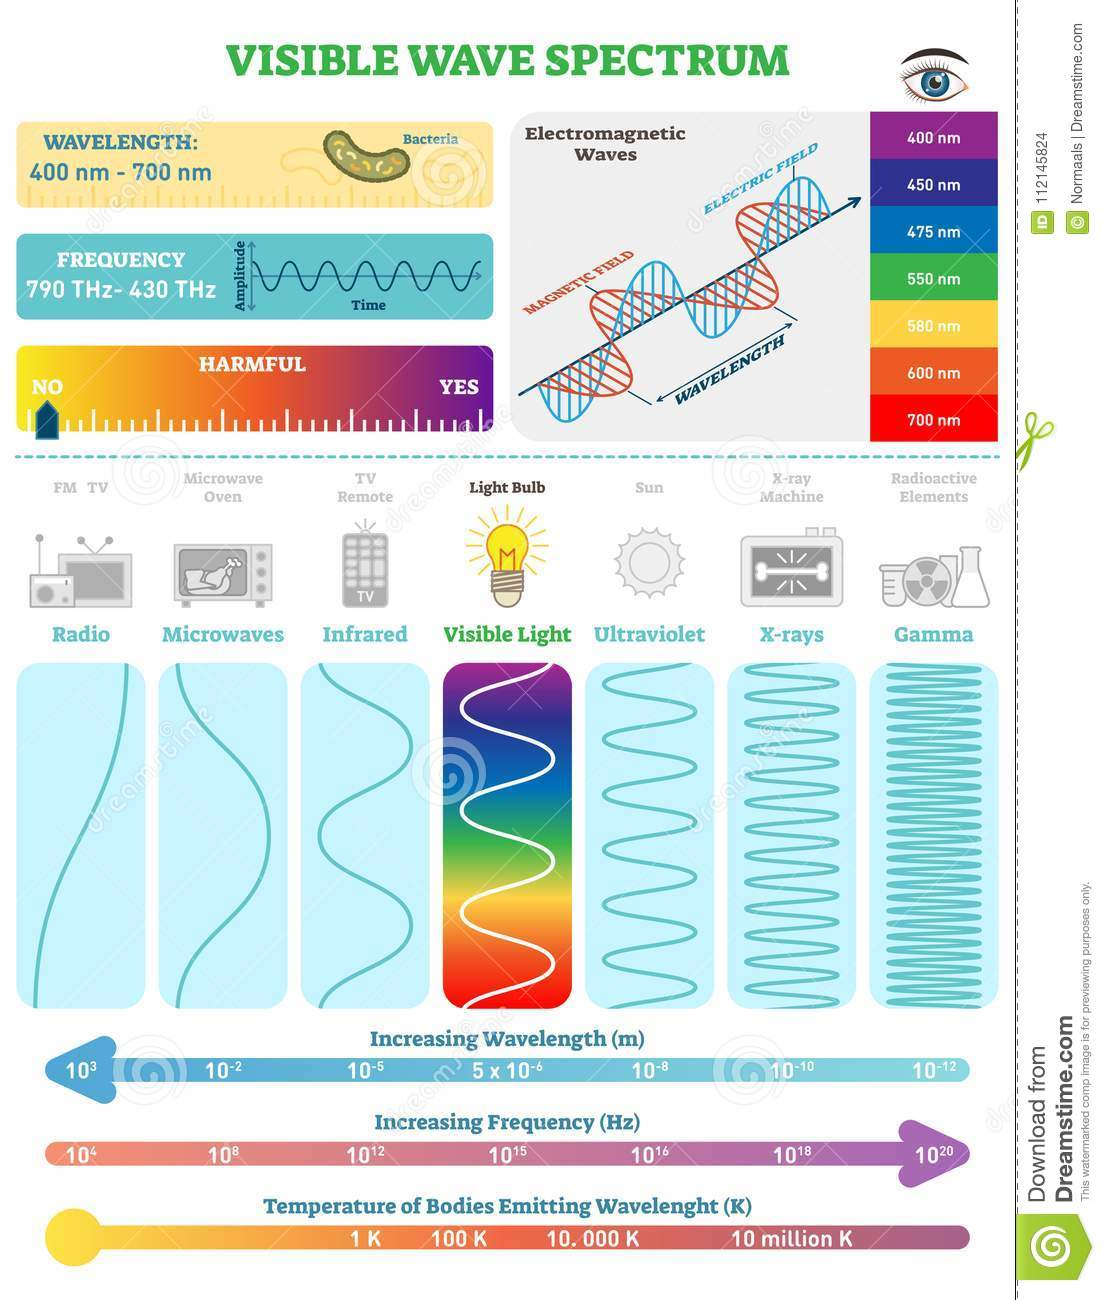 Electromagnetic Waves Visible Wave Spectrum Vector